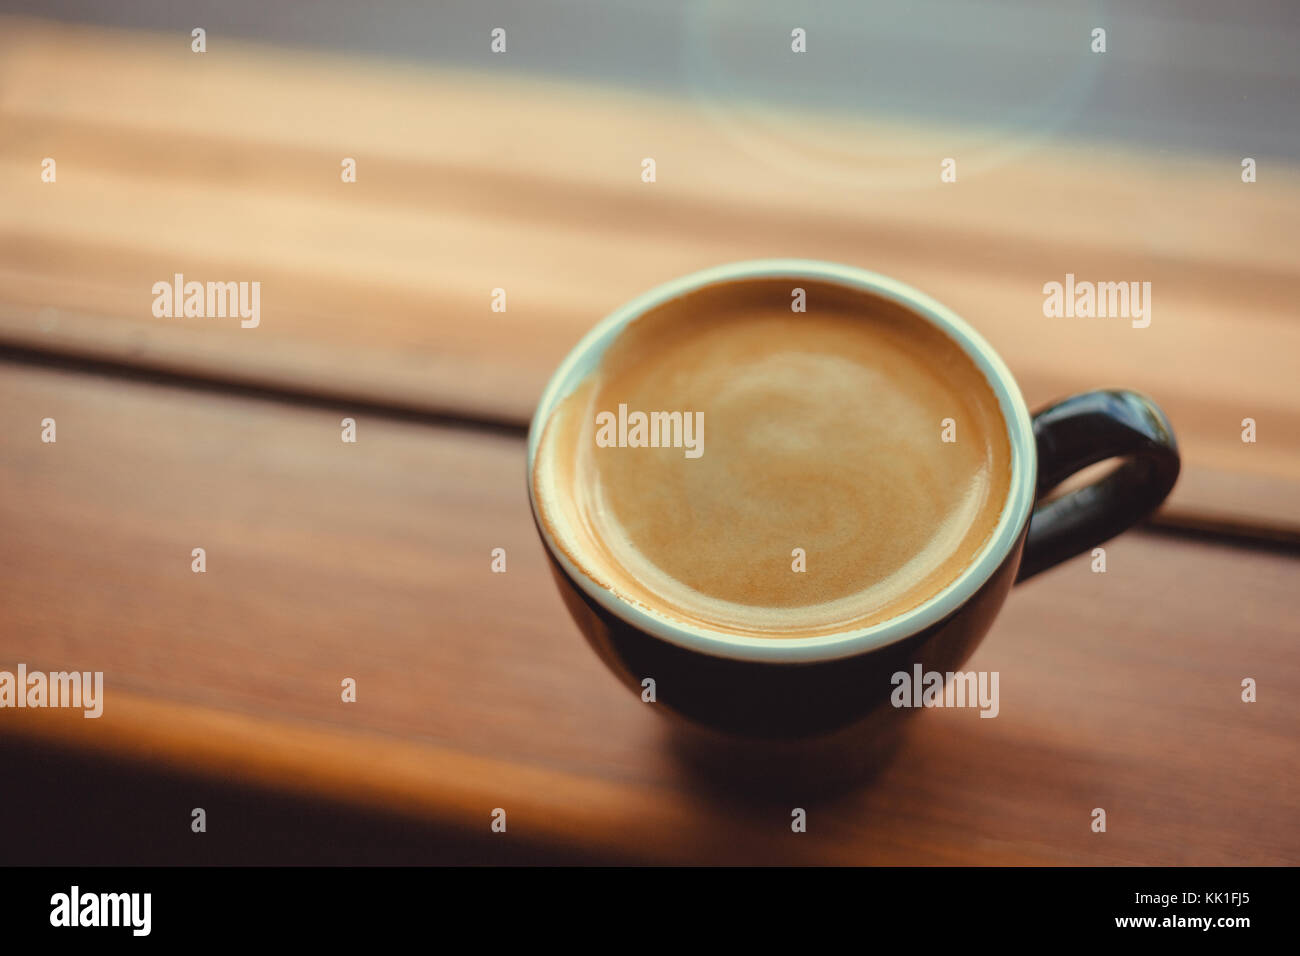 americano coffee on a side of the window in the morning, selective focus. vintage photo and film style. - Stock Image